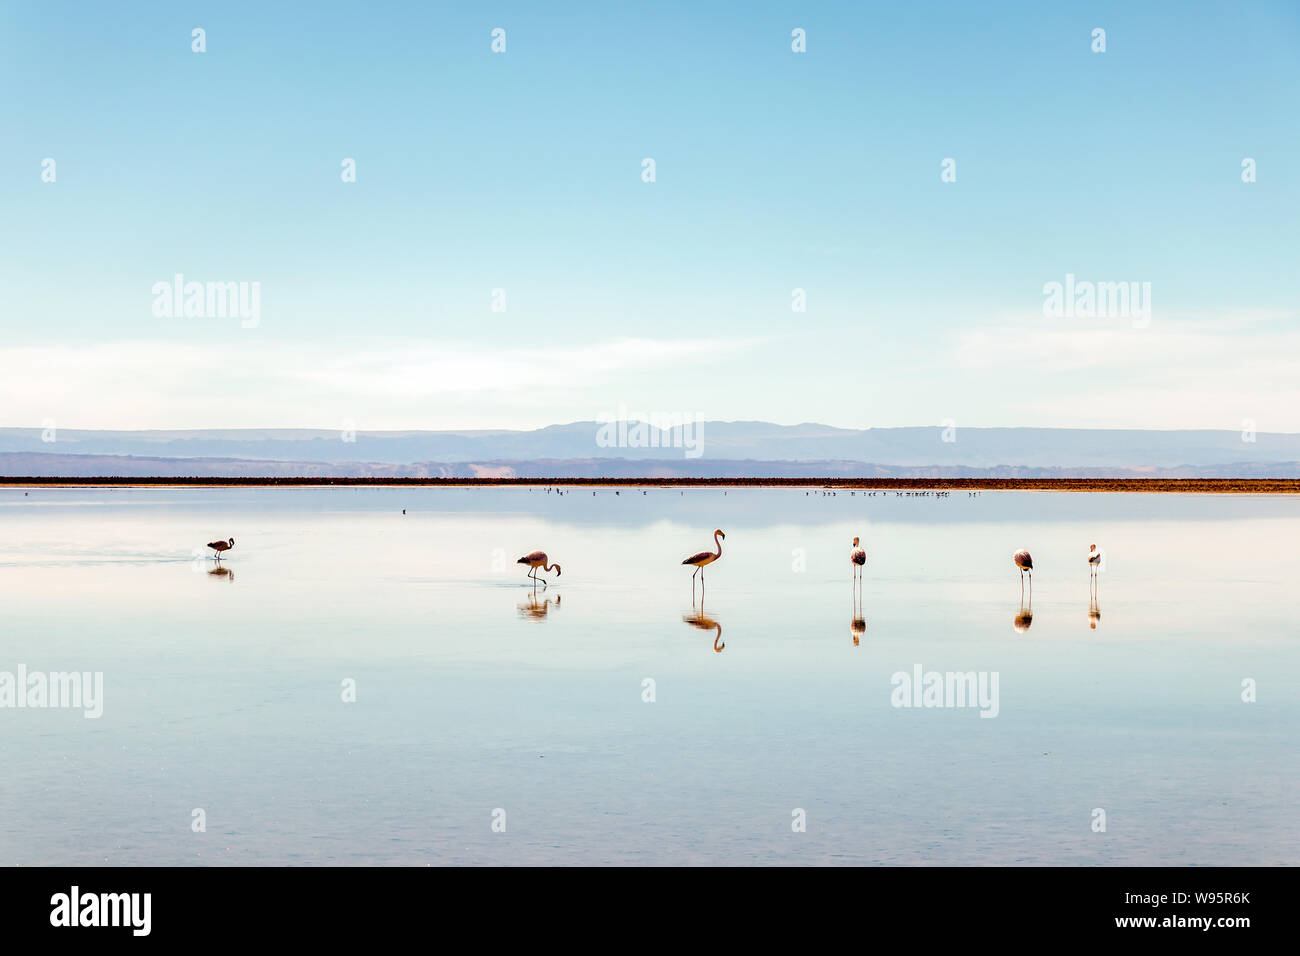 Flamingos at Chaxa Lagoon, Atakama Salar, Chile : Unusual  Andean landscape of salt formations and salt lake with volcanoes seen in the distance Stock Photo